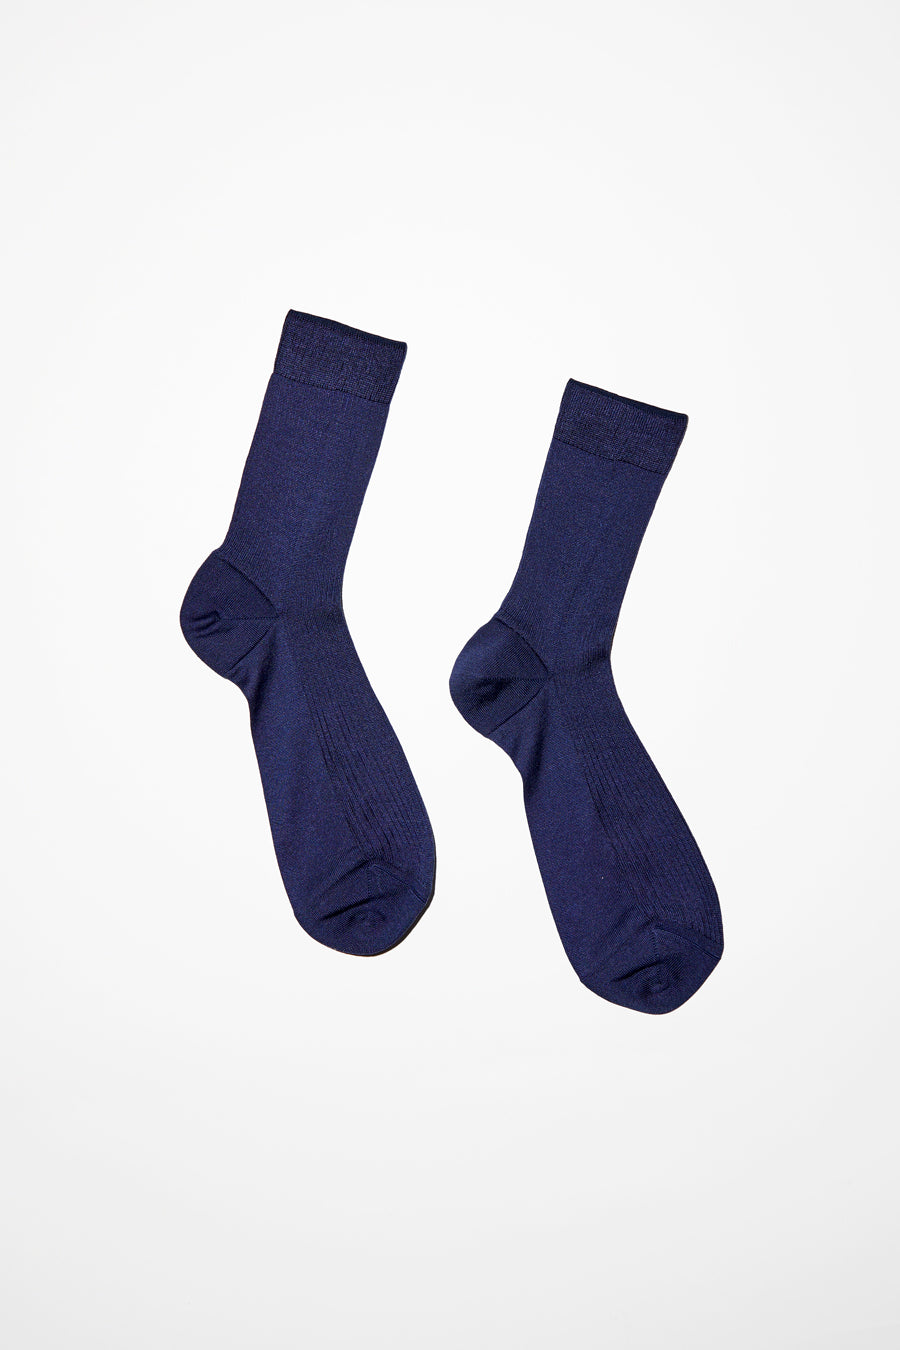 Maria La Rosa Silk Ribbed Ankle Sock in Blue